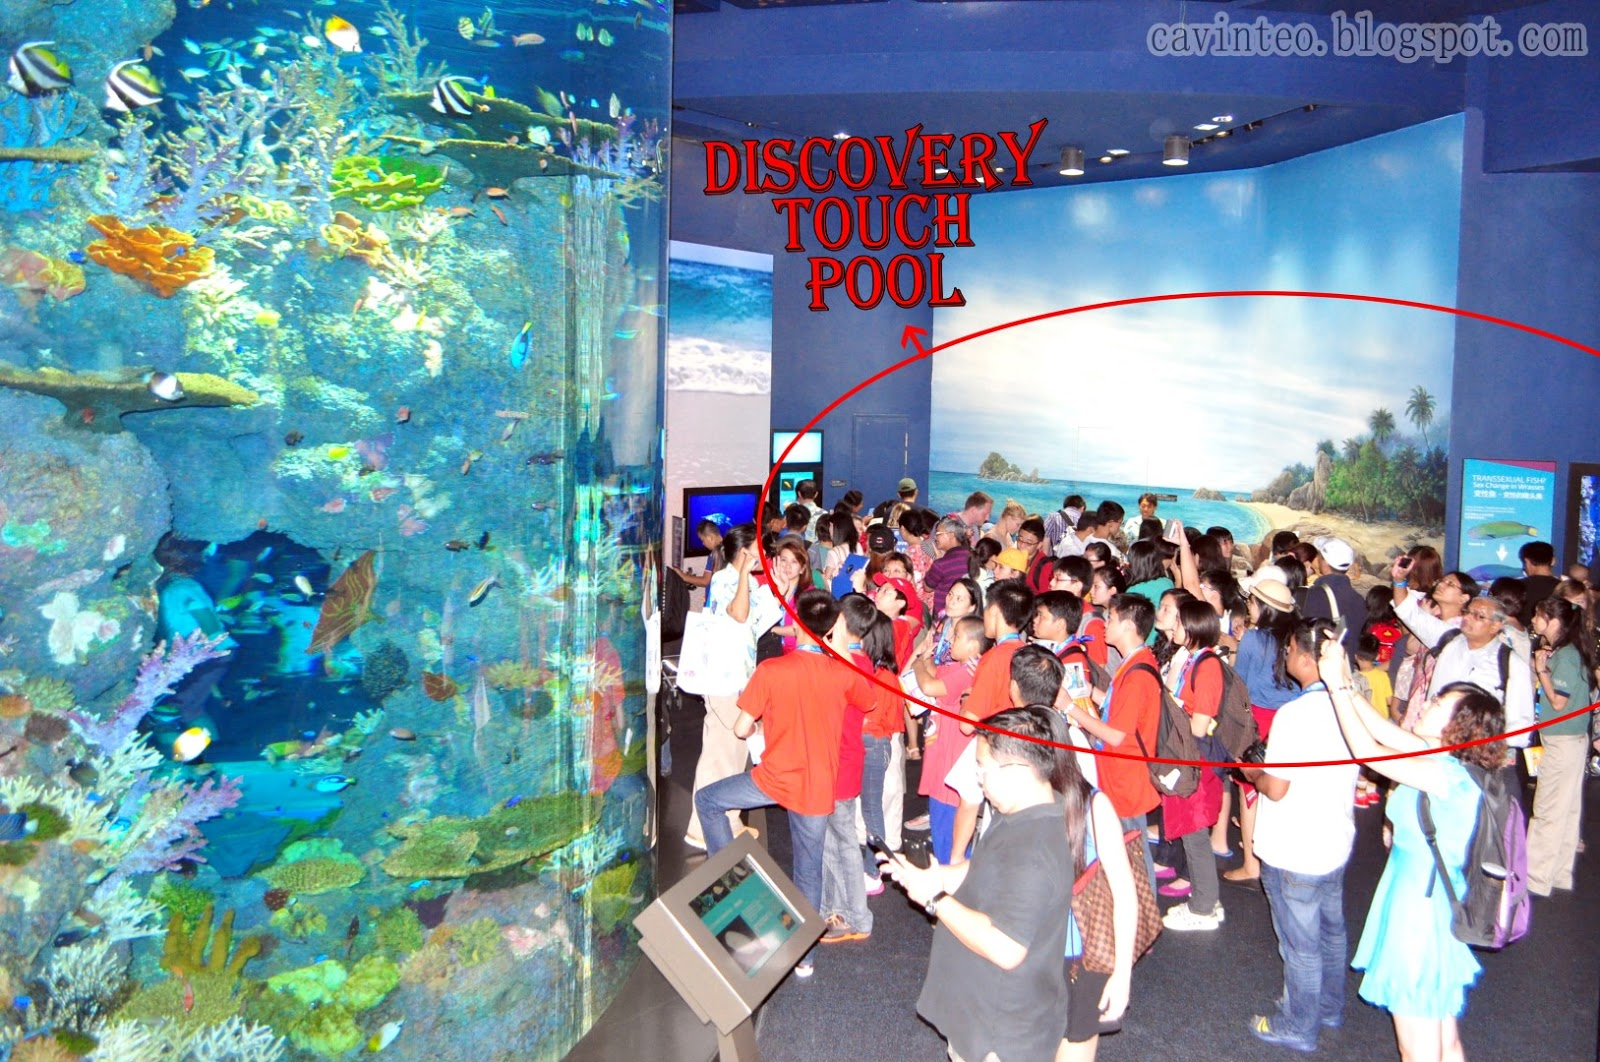 Entree Kibbles Discovery Touch Pool S E A Aquarium Resort World Sentosa Singapore